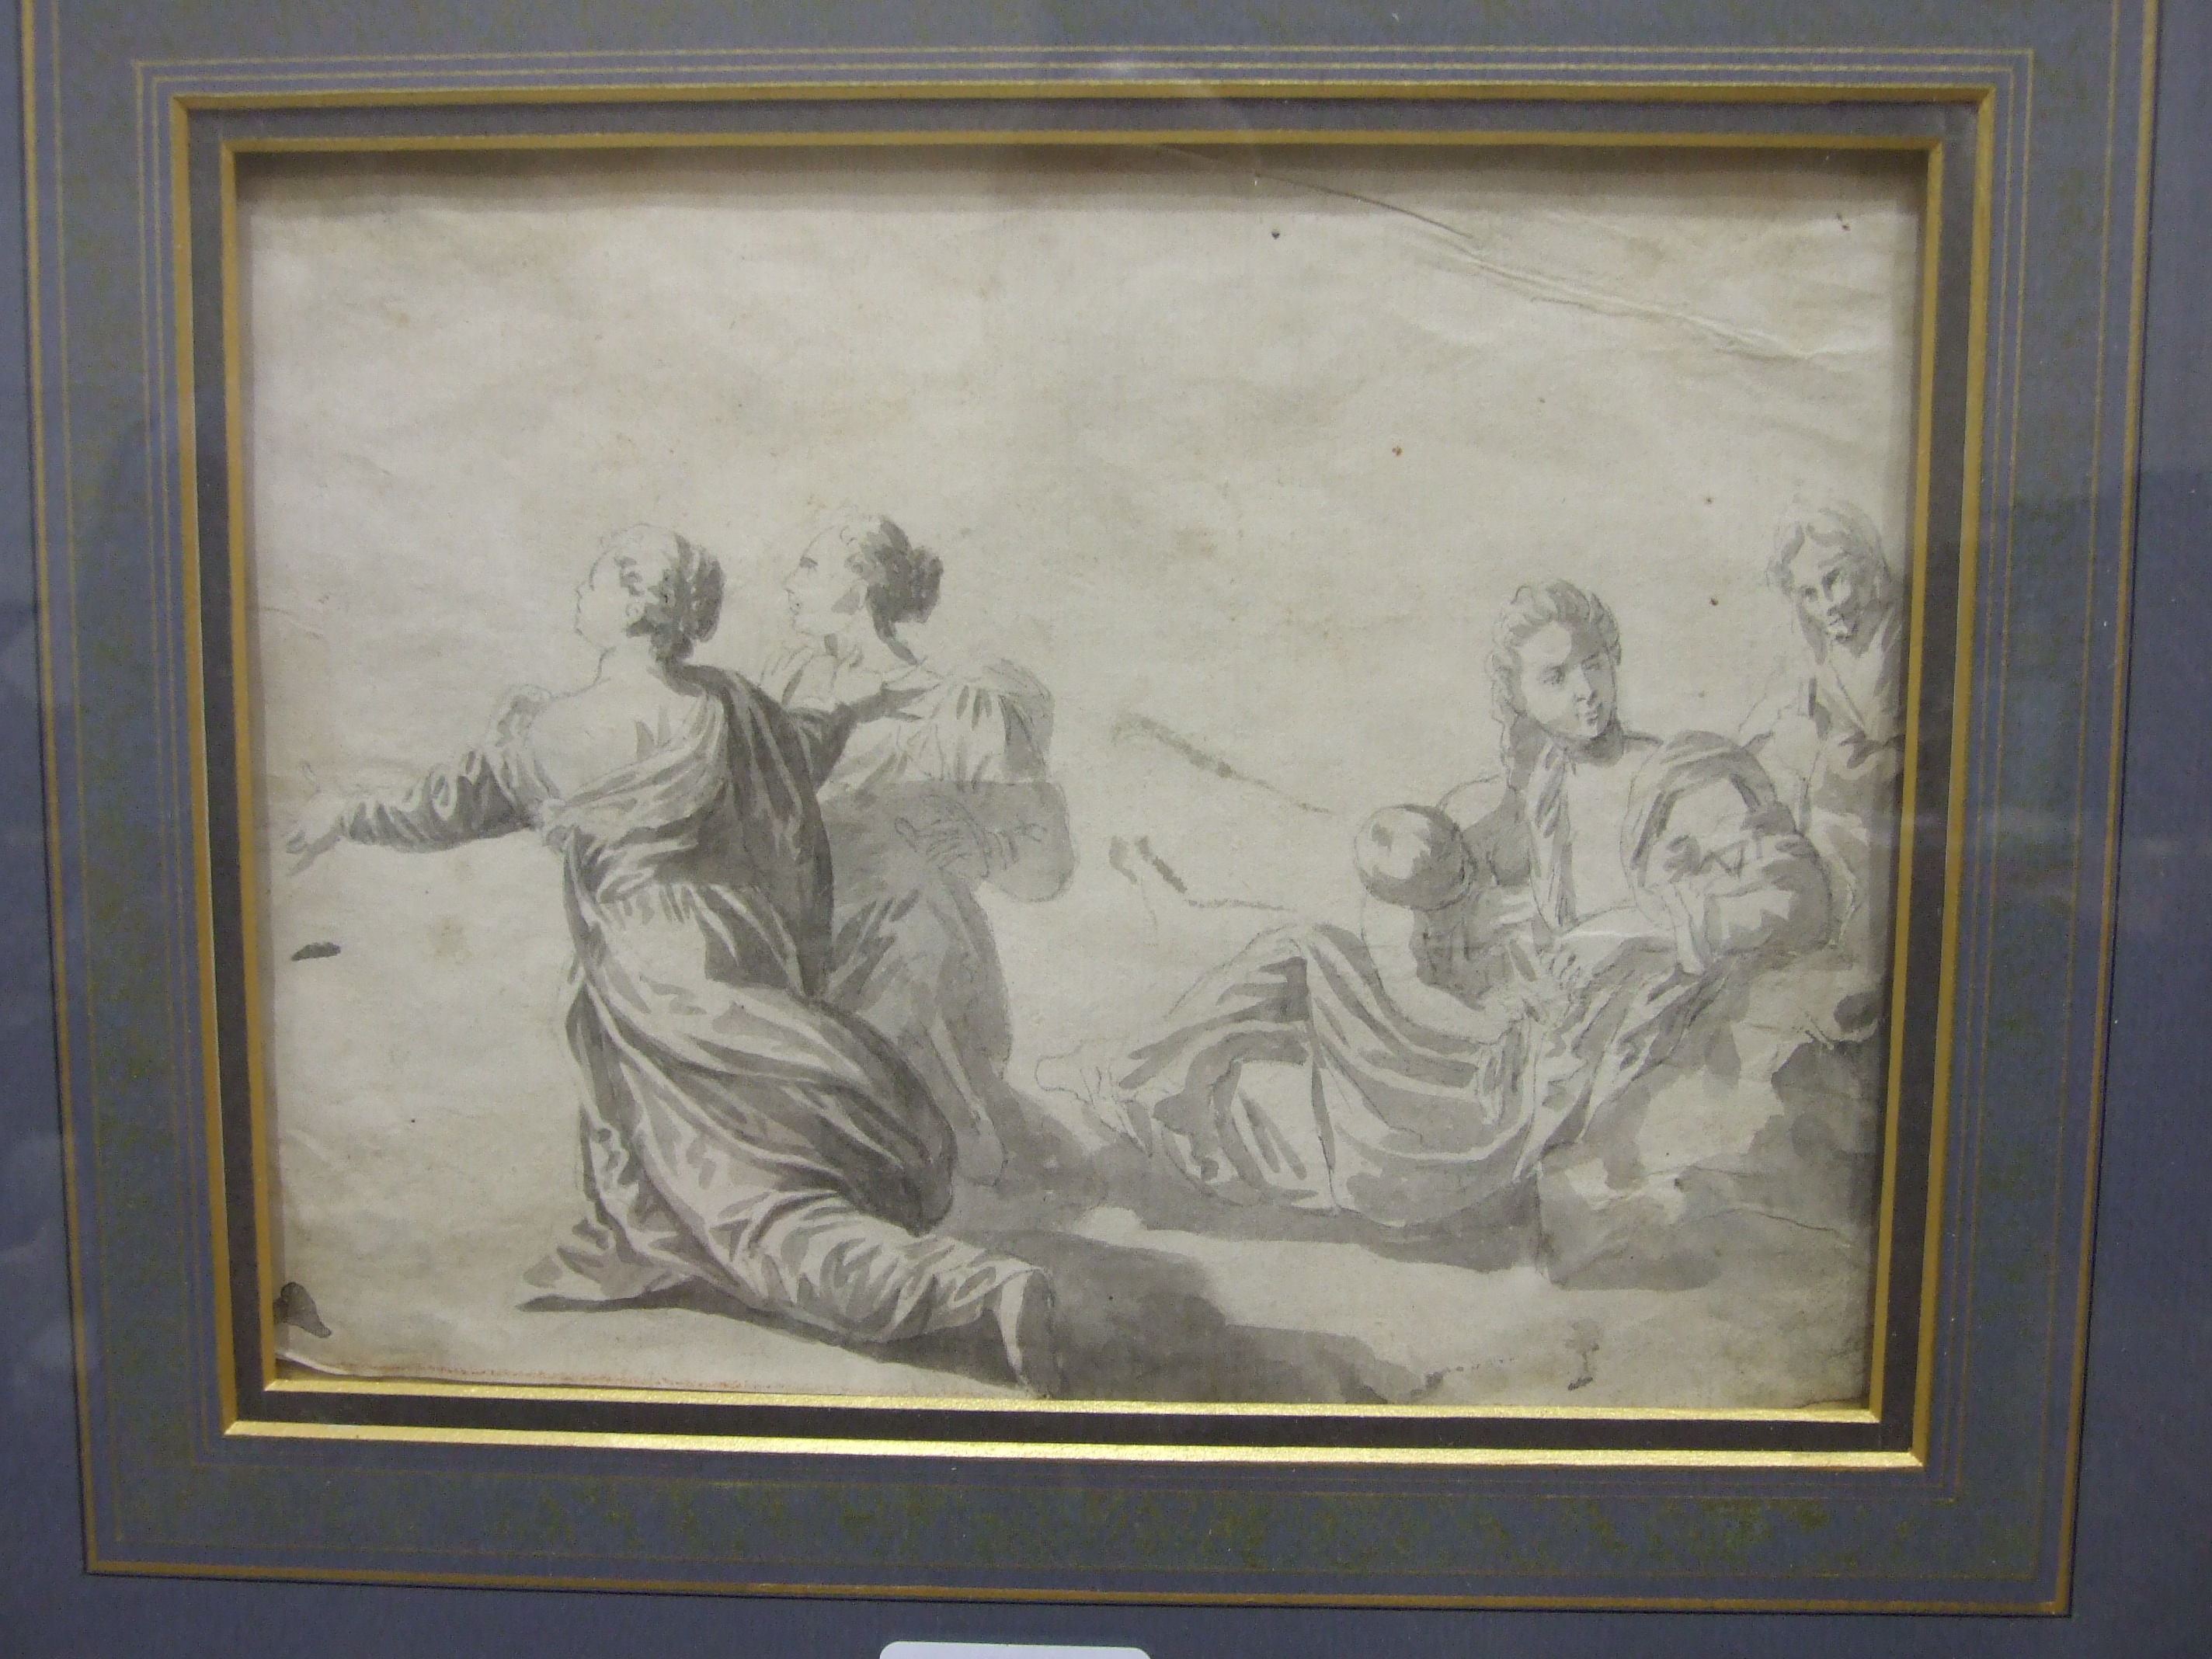 Lot 31 - 17th century Italian School, 'Mother and child with three attendant figures', unsigned wash